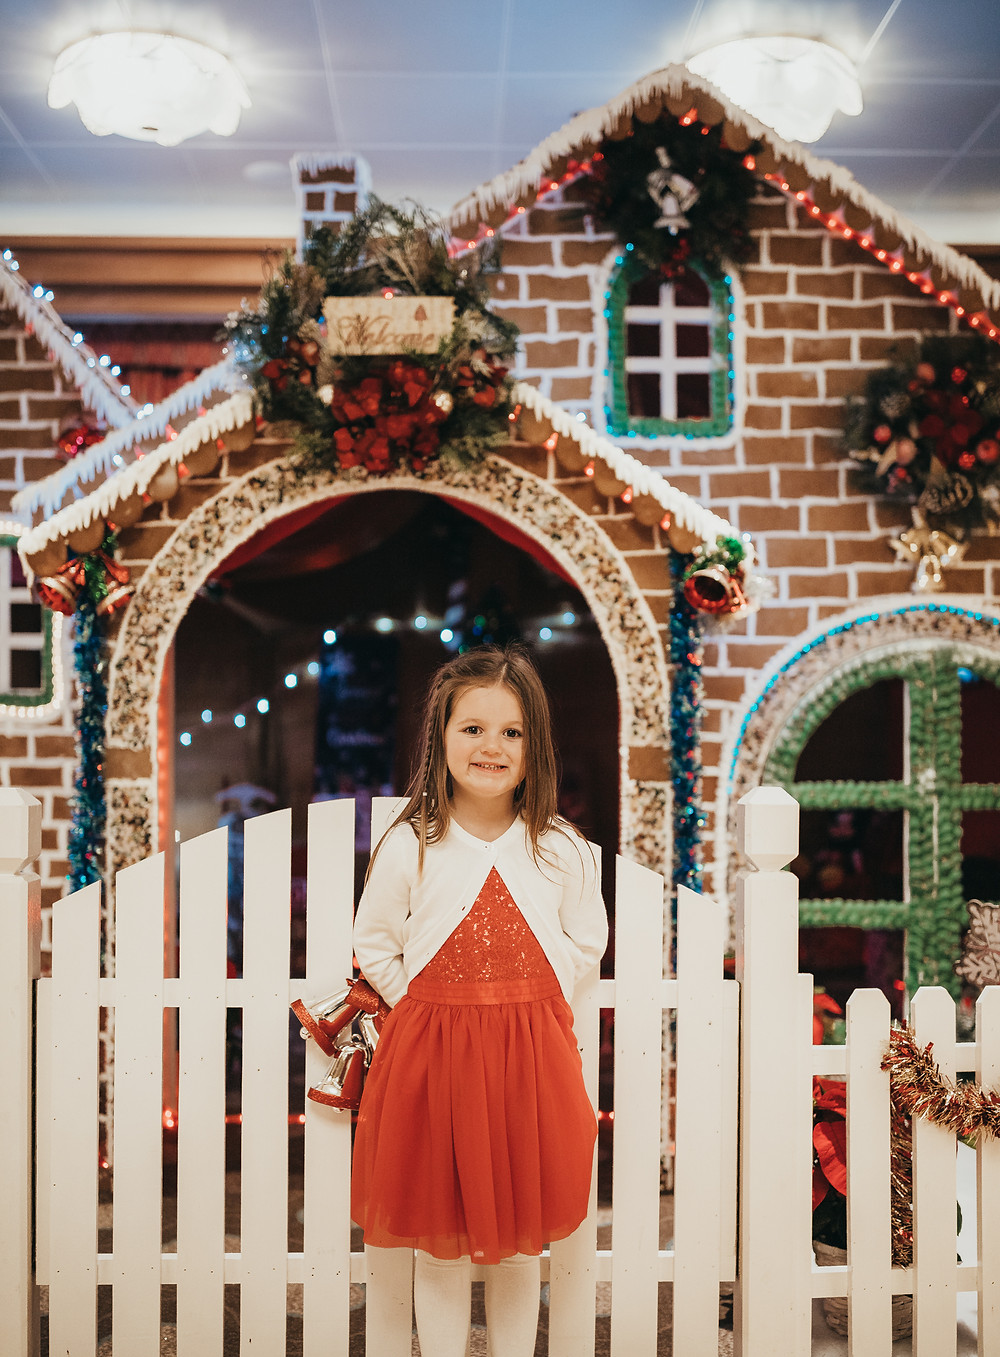 A little girl in a red dress standing in front of a giant gingerbread house.